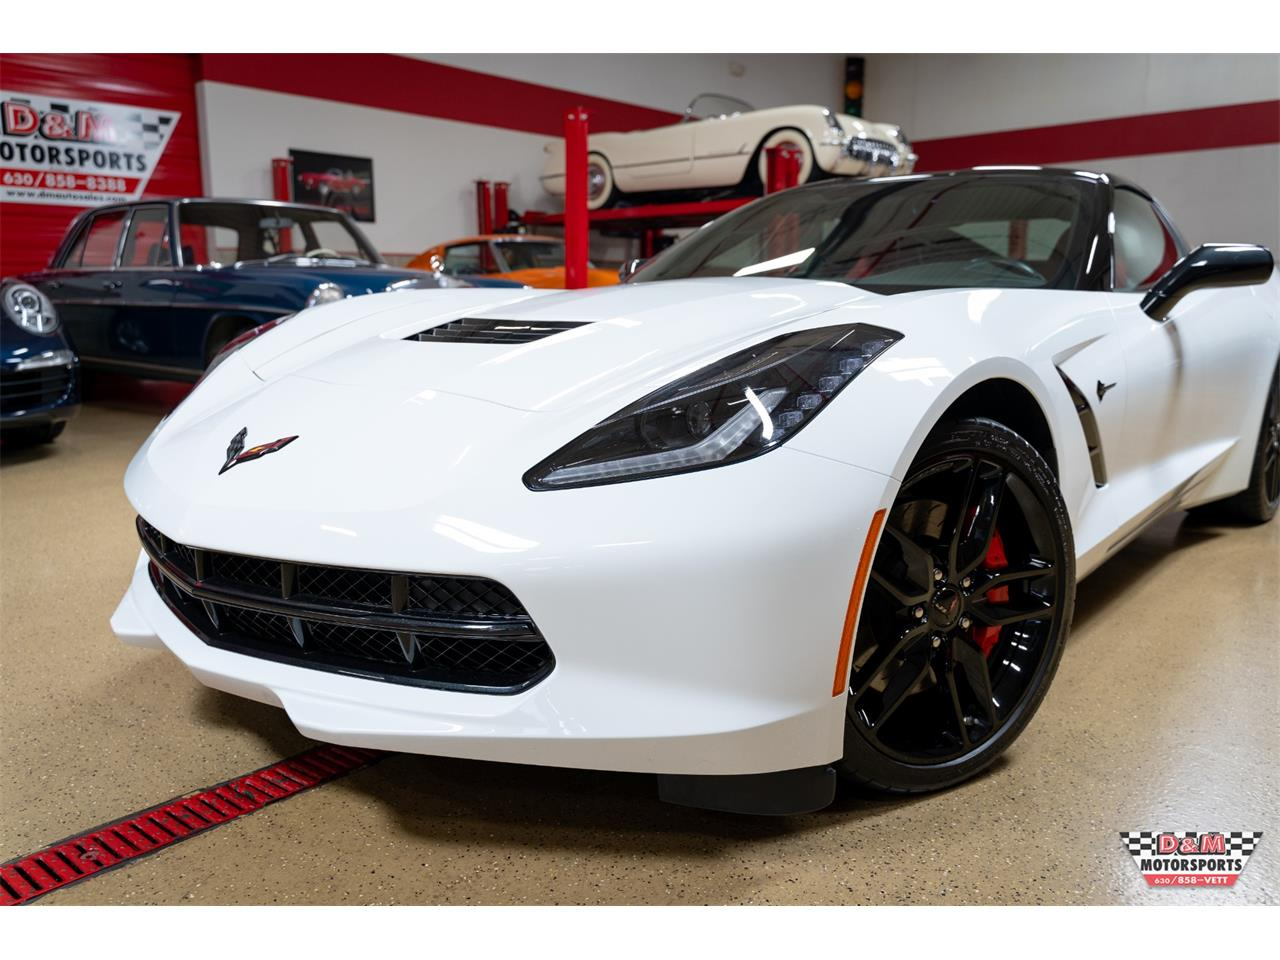 Large Picture of 2016 Chevrolet Corvette located in Illinois Offered by D & M Motorsports - R2HE